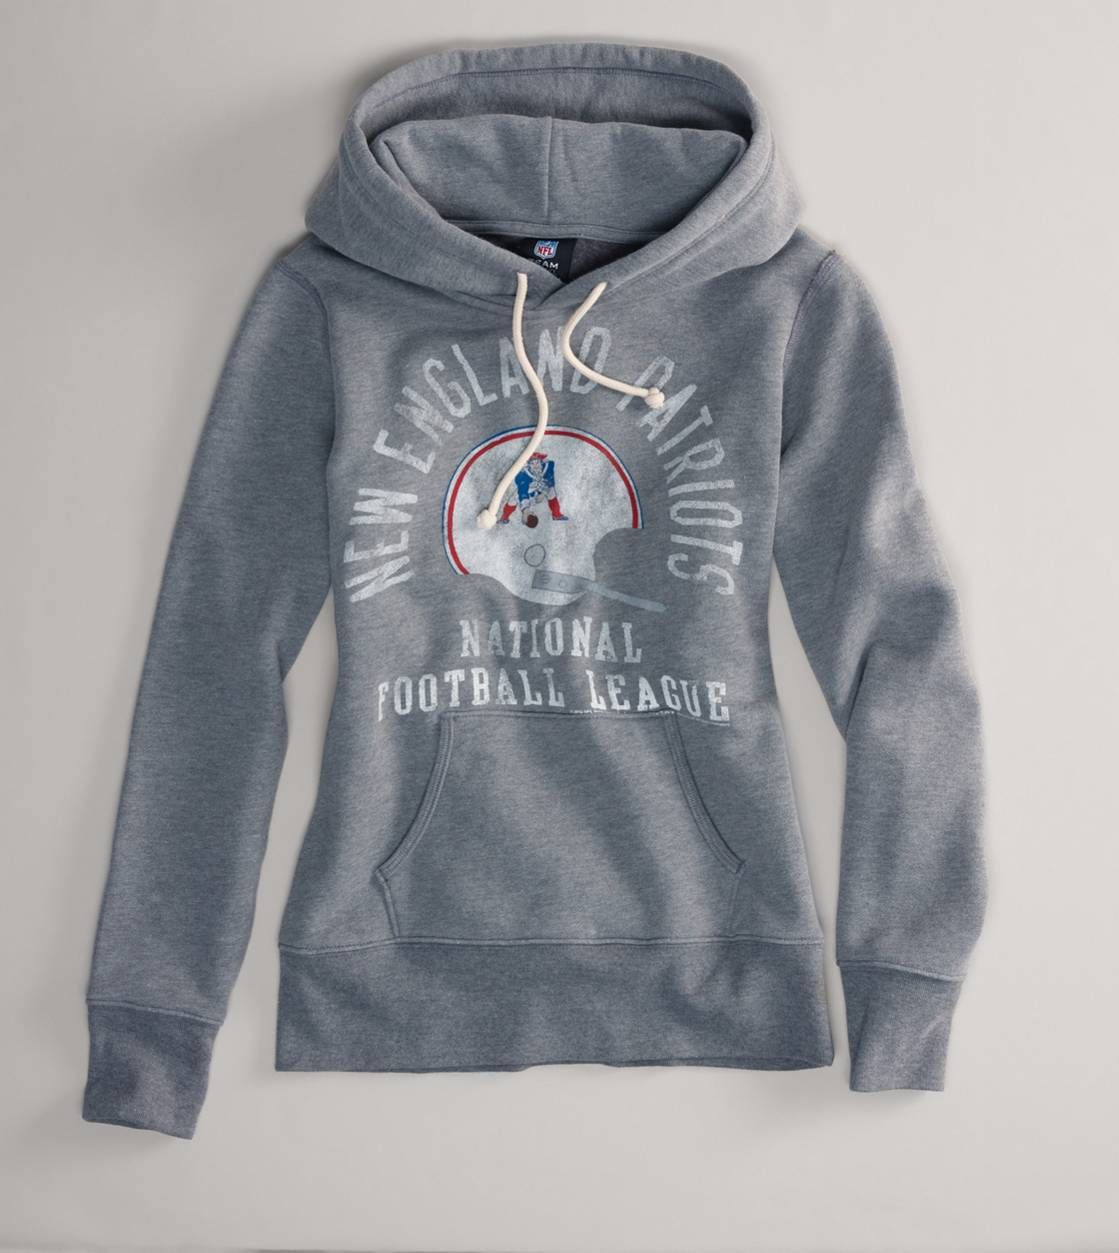 New England Patriots Nfl Hooded Popover New England Patriots Hoodie Patriots Sweatshirt Patriots